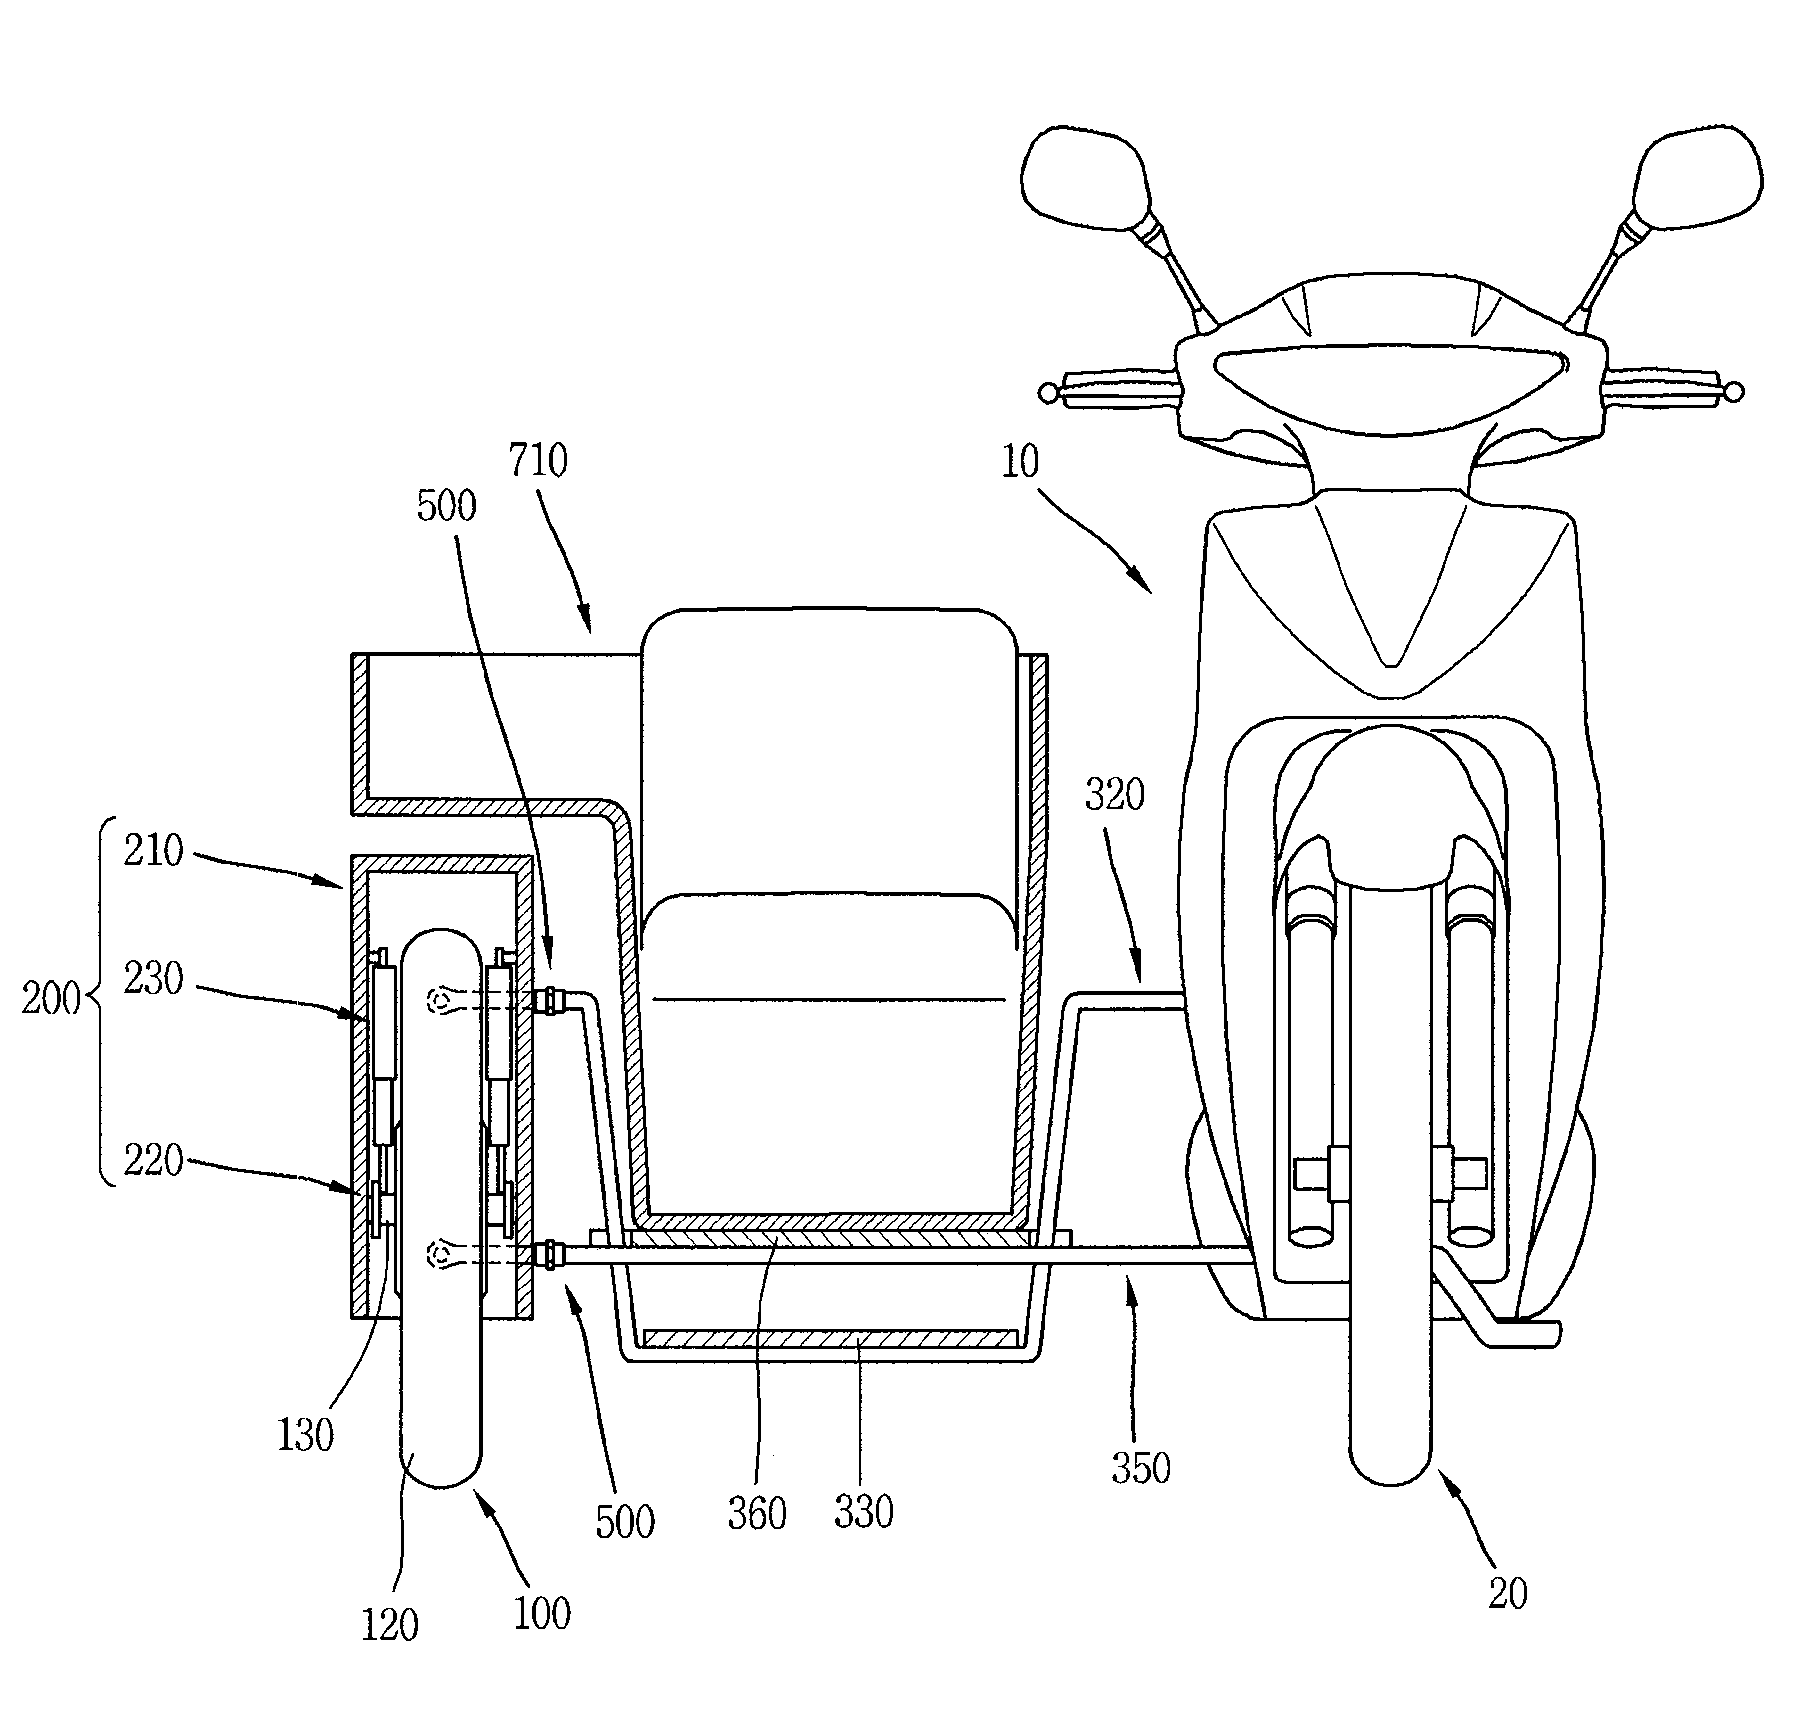 Patent Us7857324 - Motorcycle Sidecar